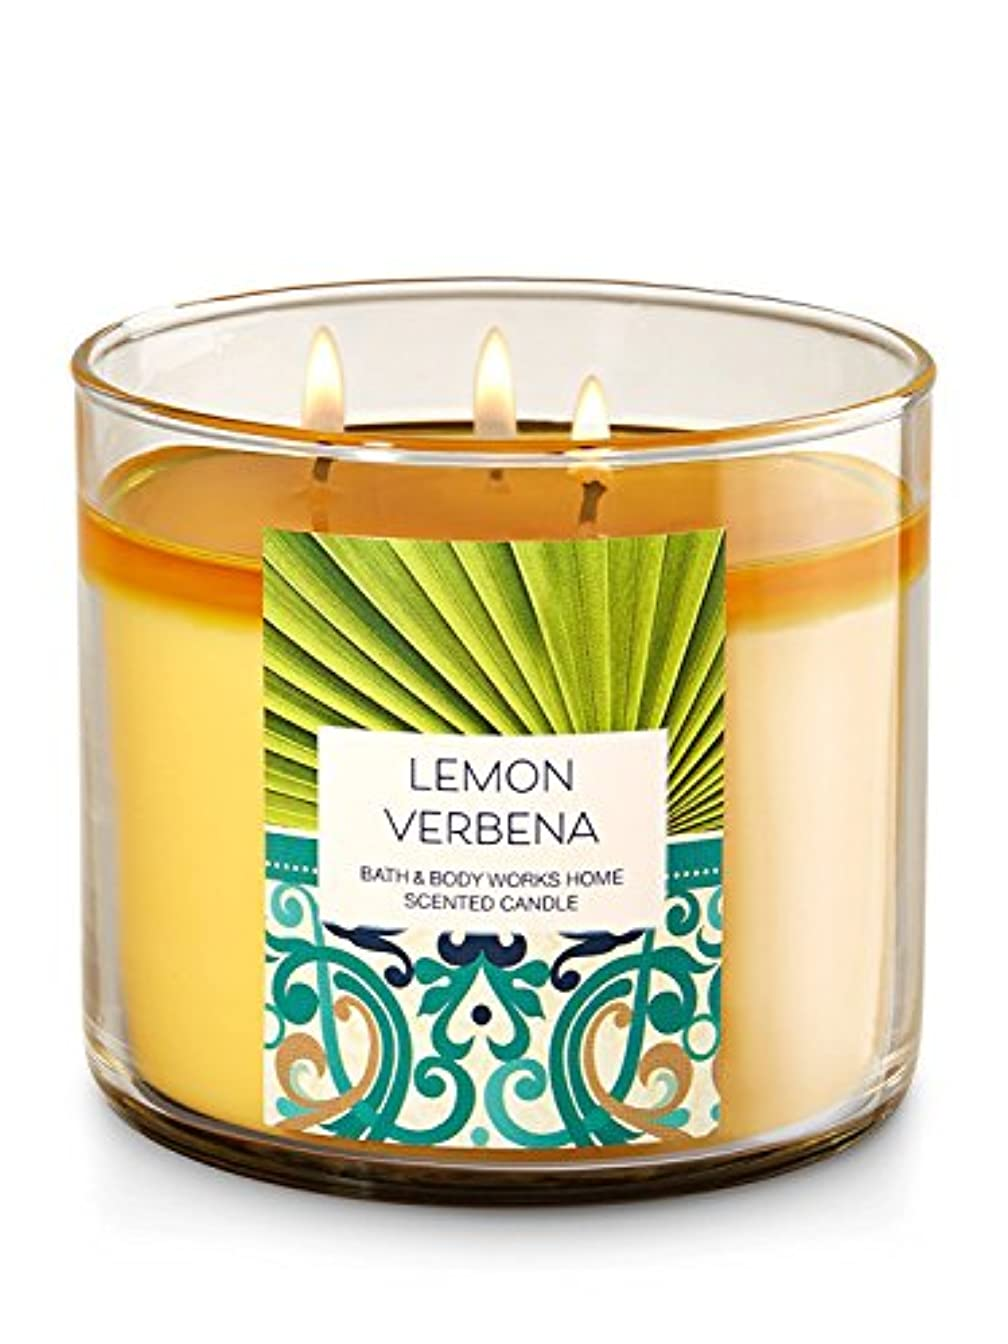 嬉しいですヒール夕暮れBath & Body Works Lemon Verbena 3 Wick Candle – 14.5oz Fall 2016